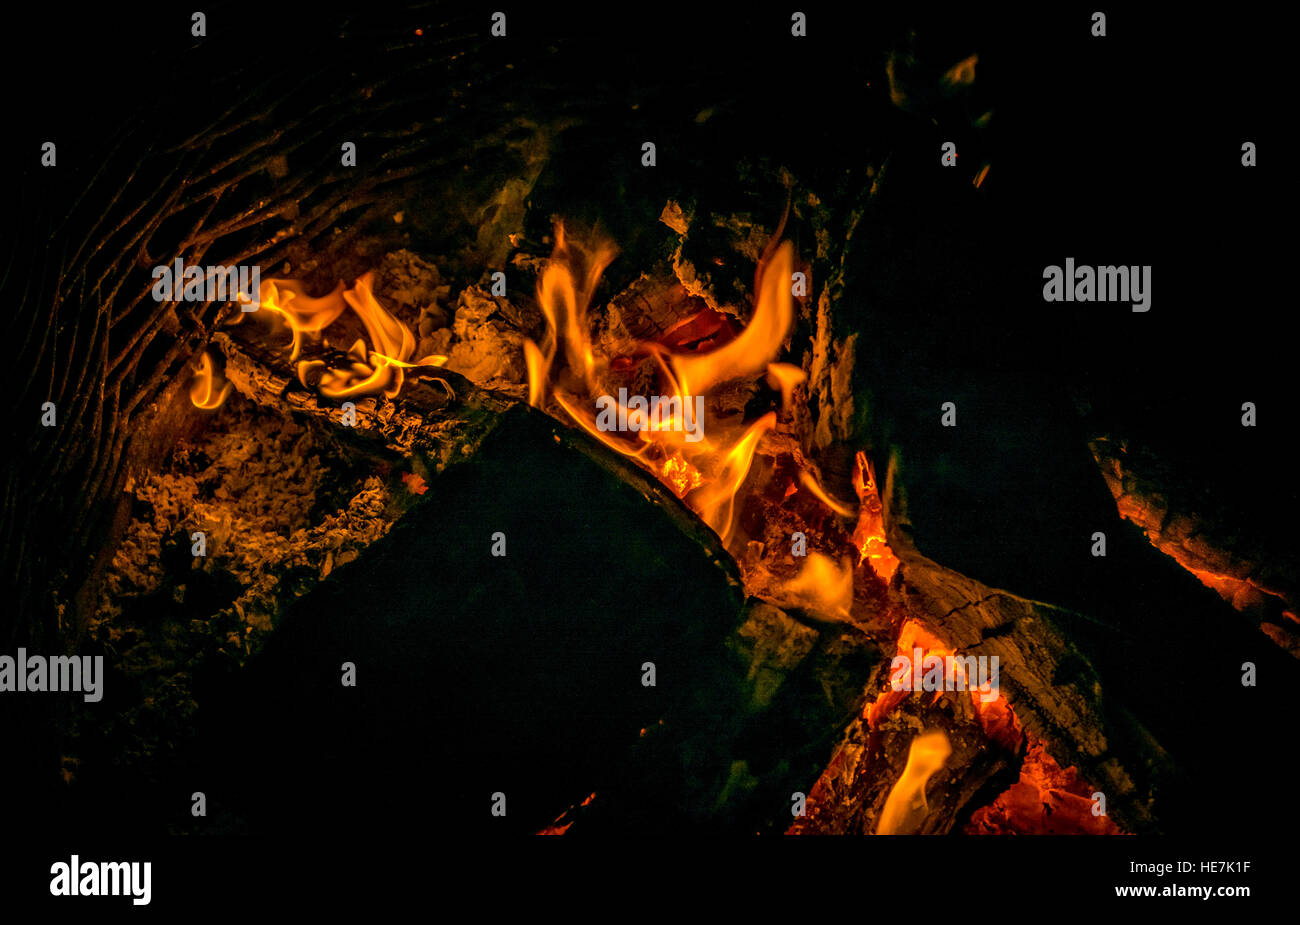 Flames and embers of a camp fire - Stock Image